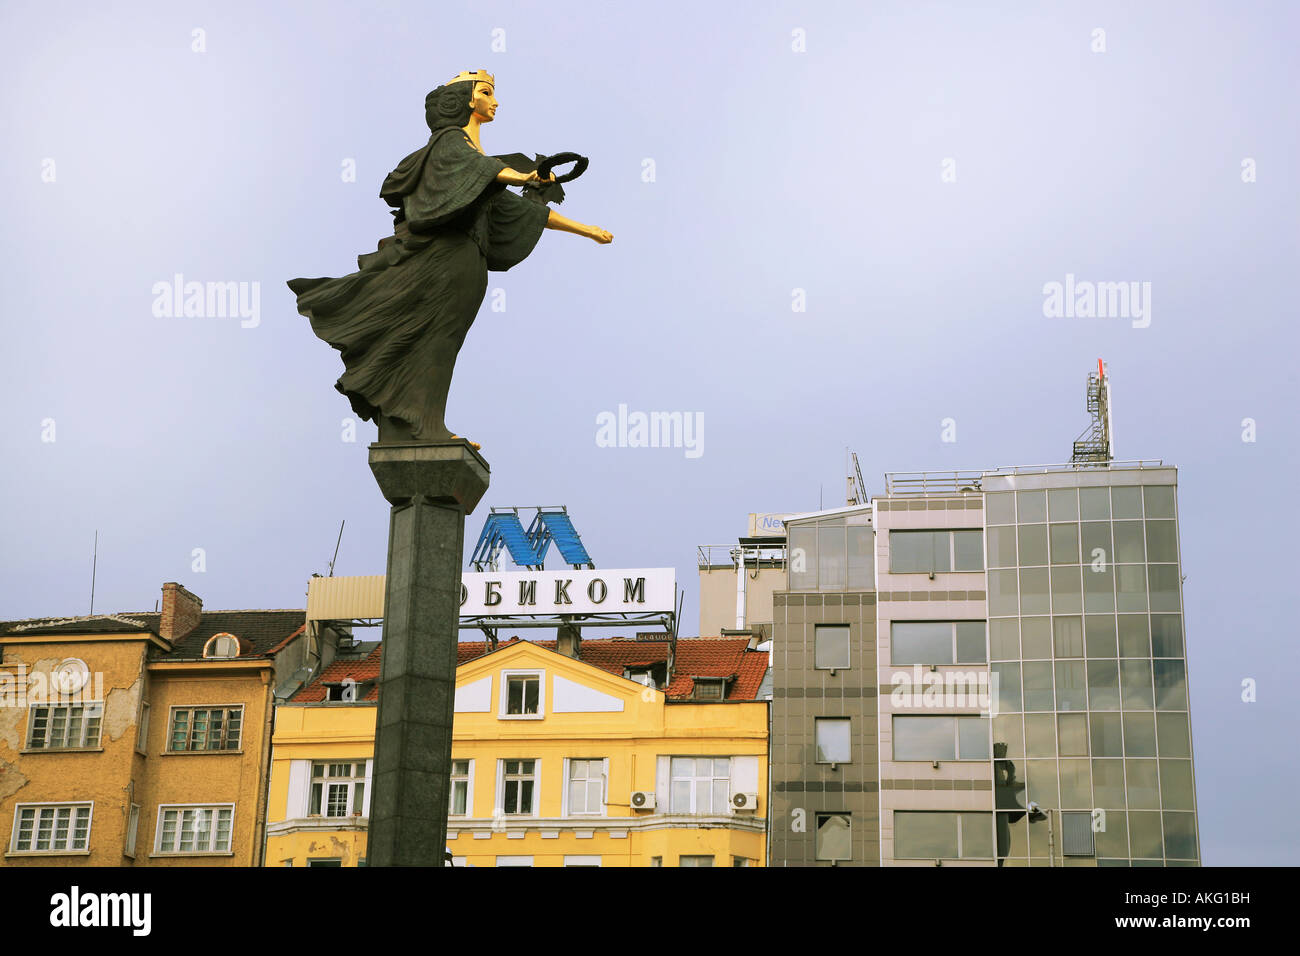 The statue of Sofia guarding and protecting the city of Sofia in Bulgaria The symbols represent fame and wisdom - Stock Image